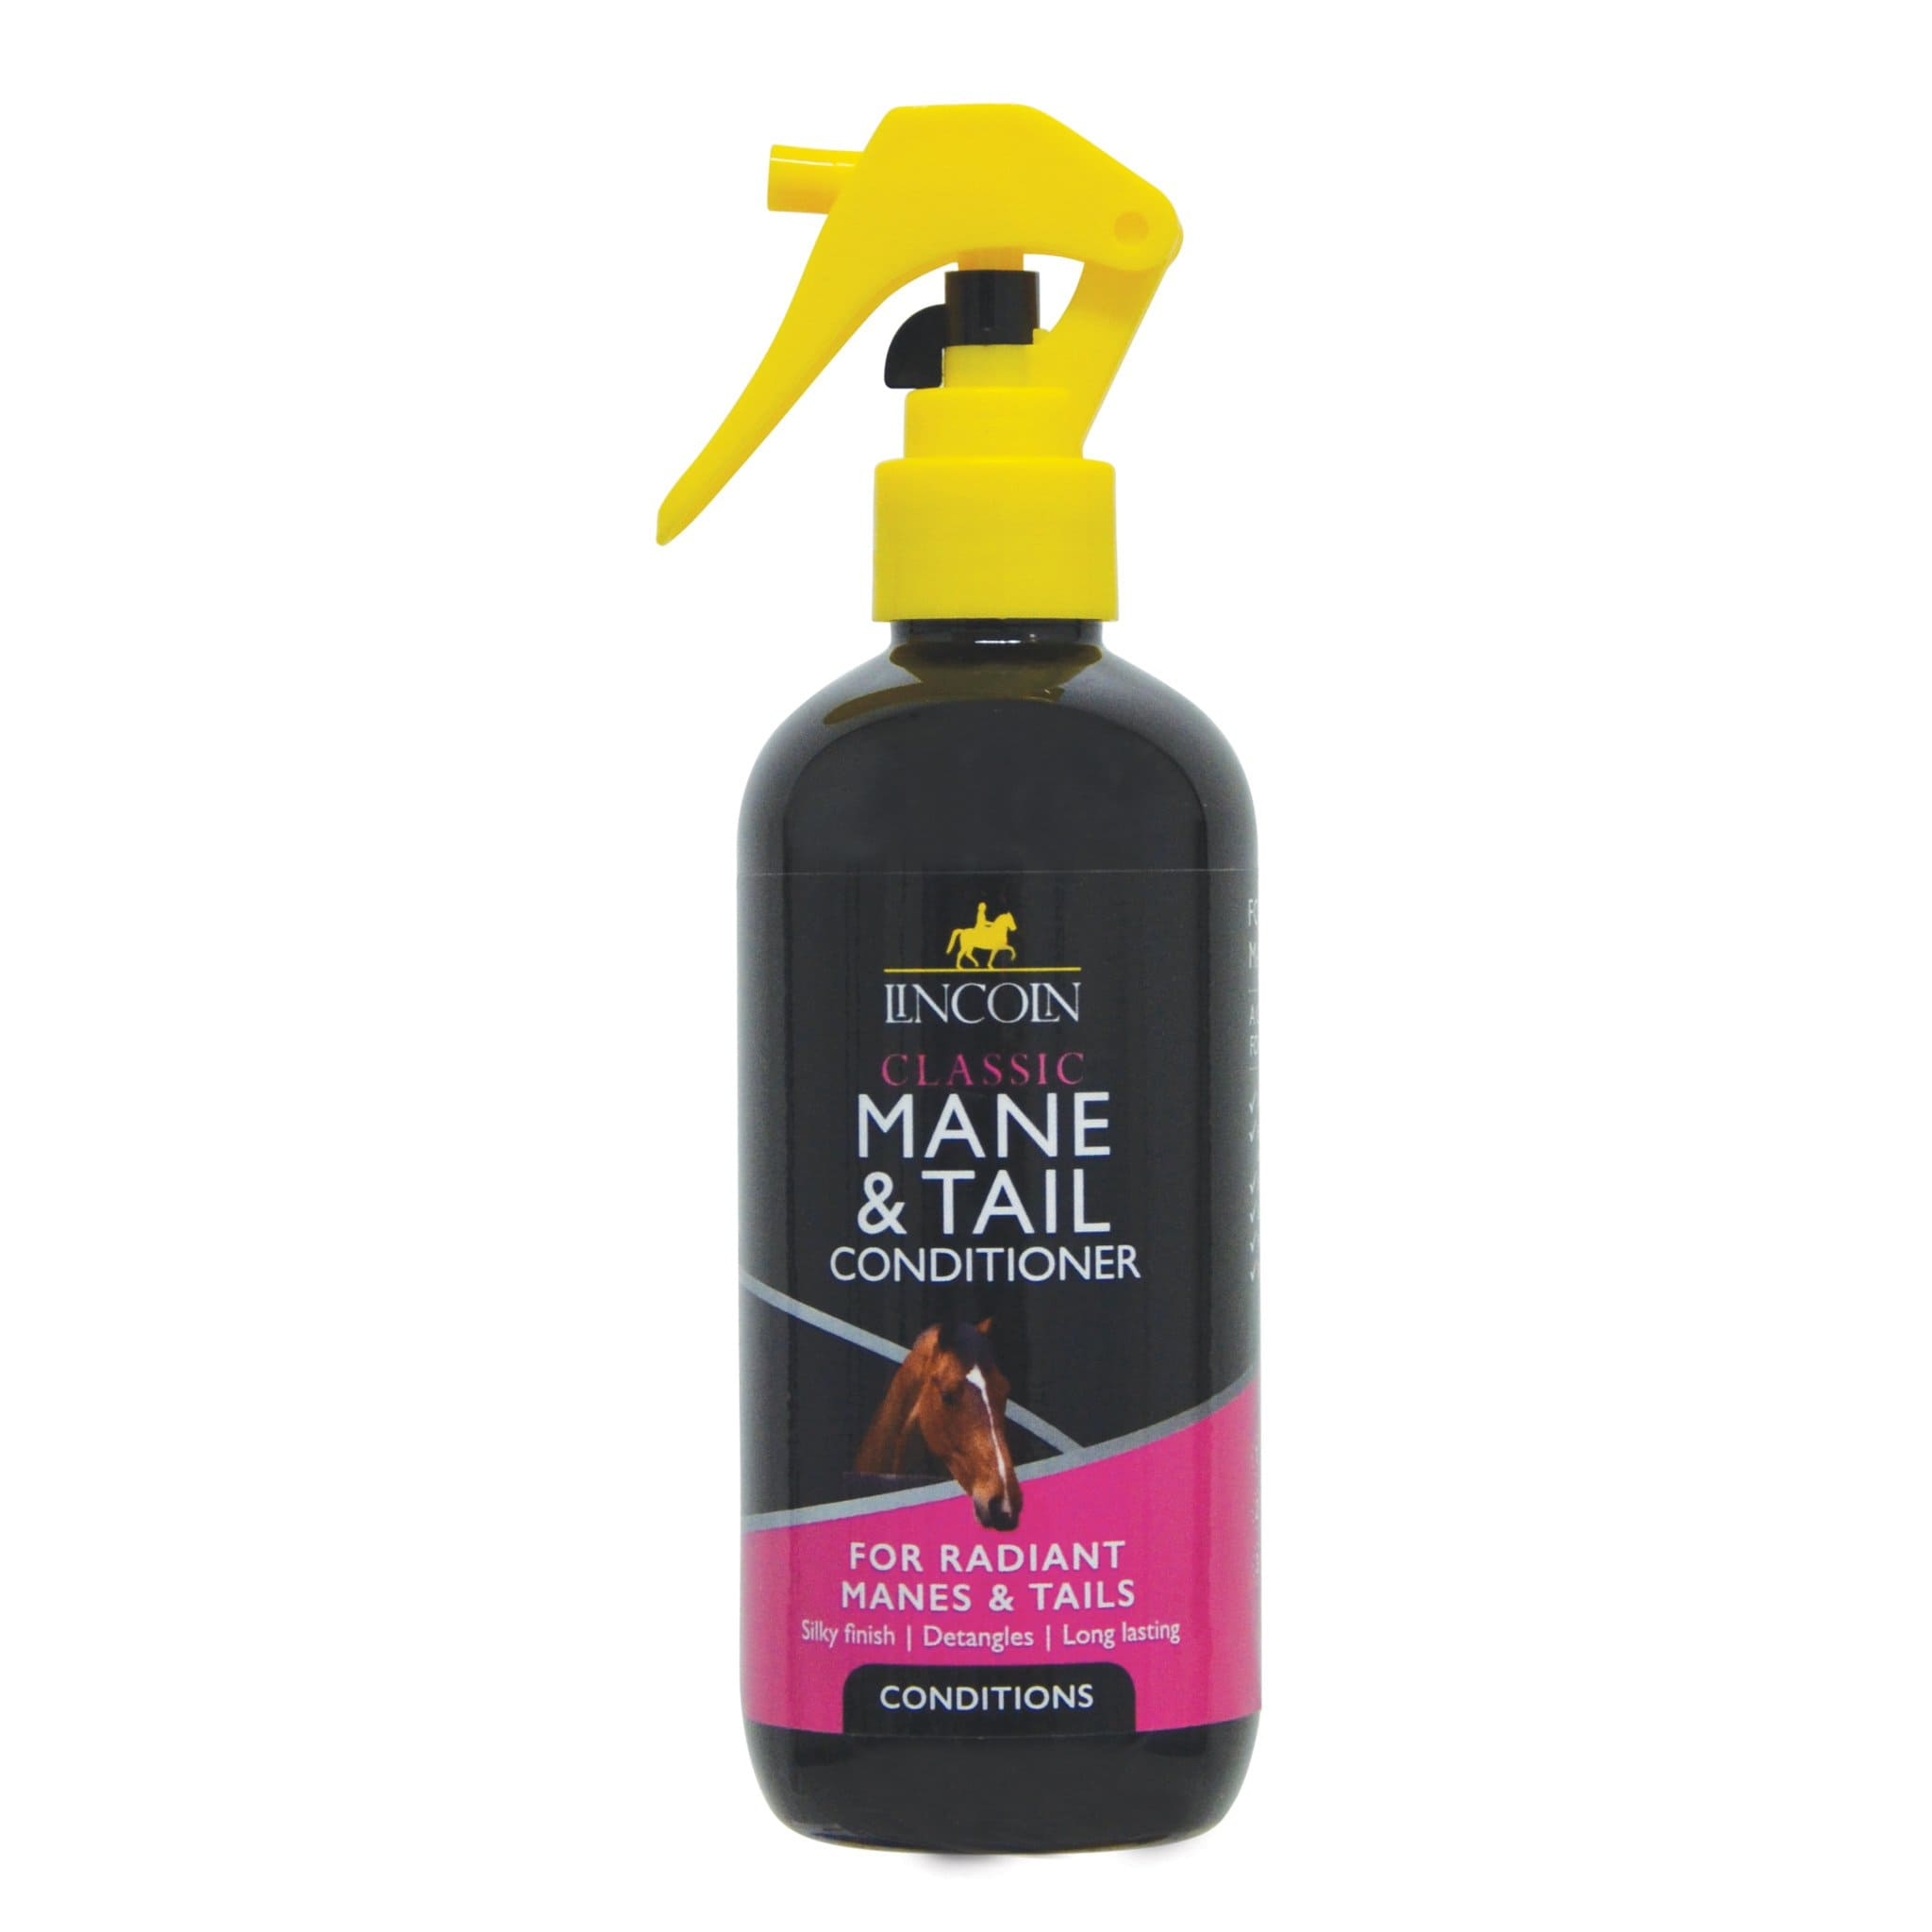 Lincoln Classic Mane and Tail Conditioner 4020